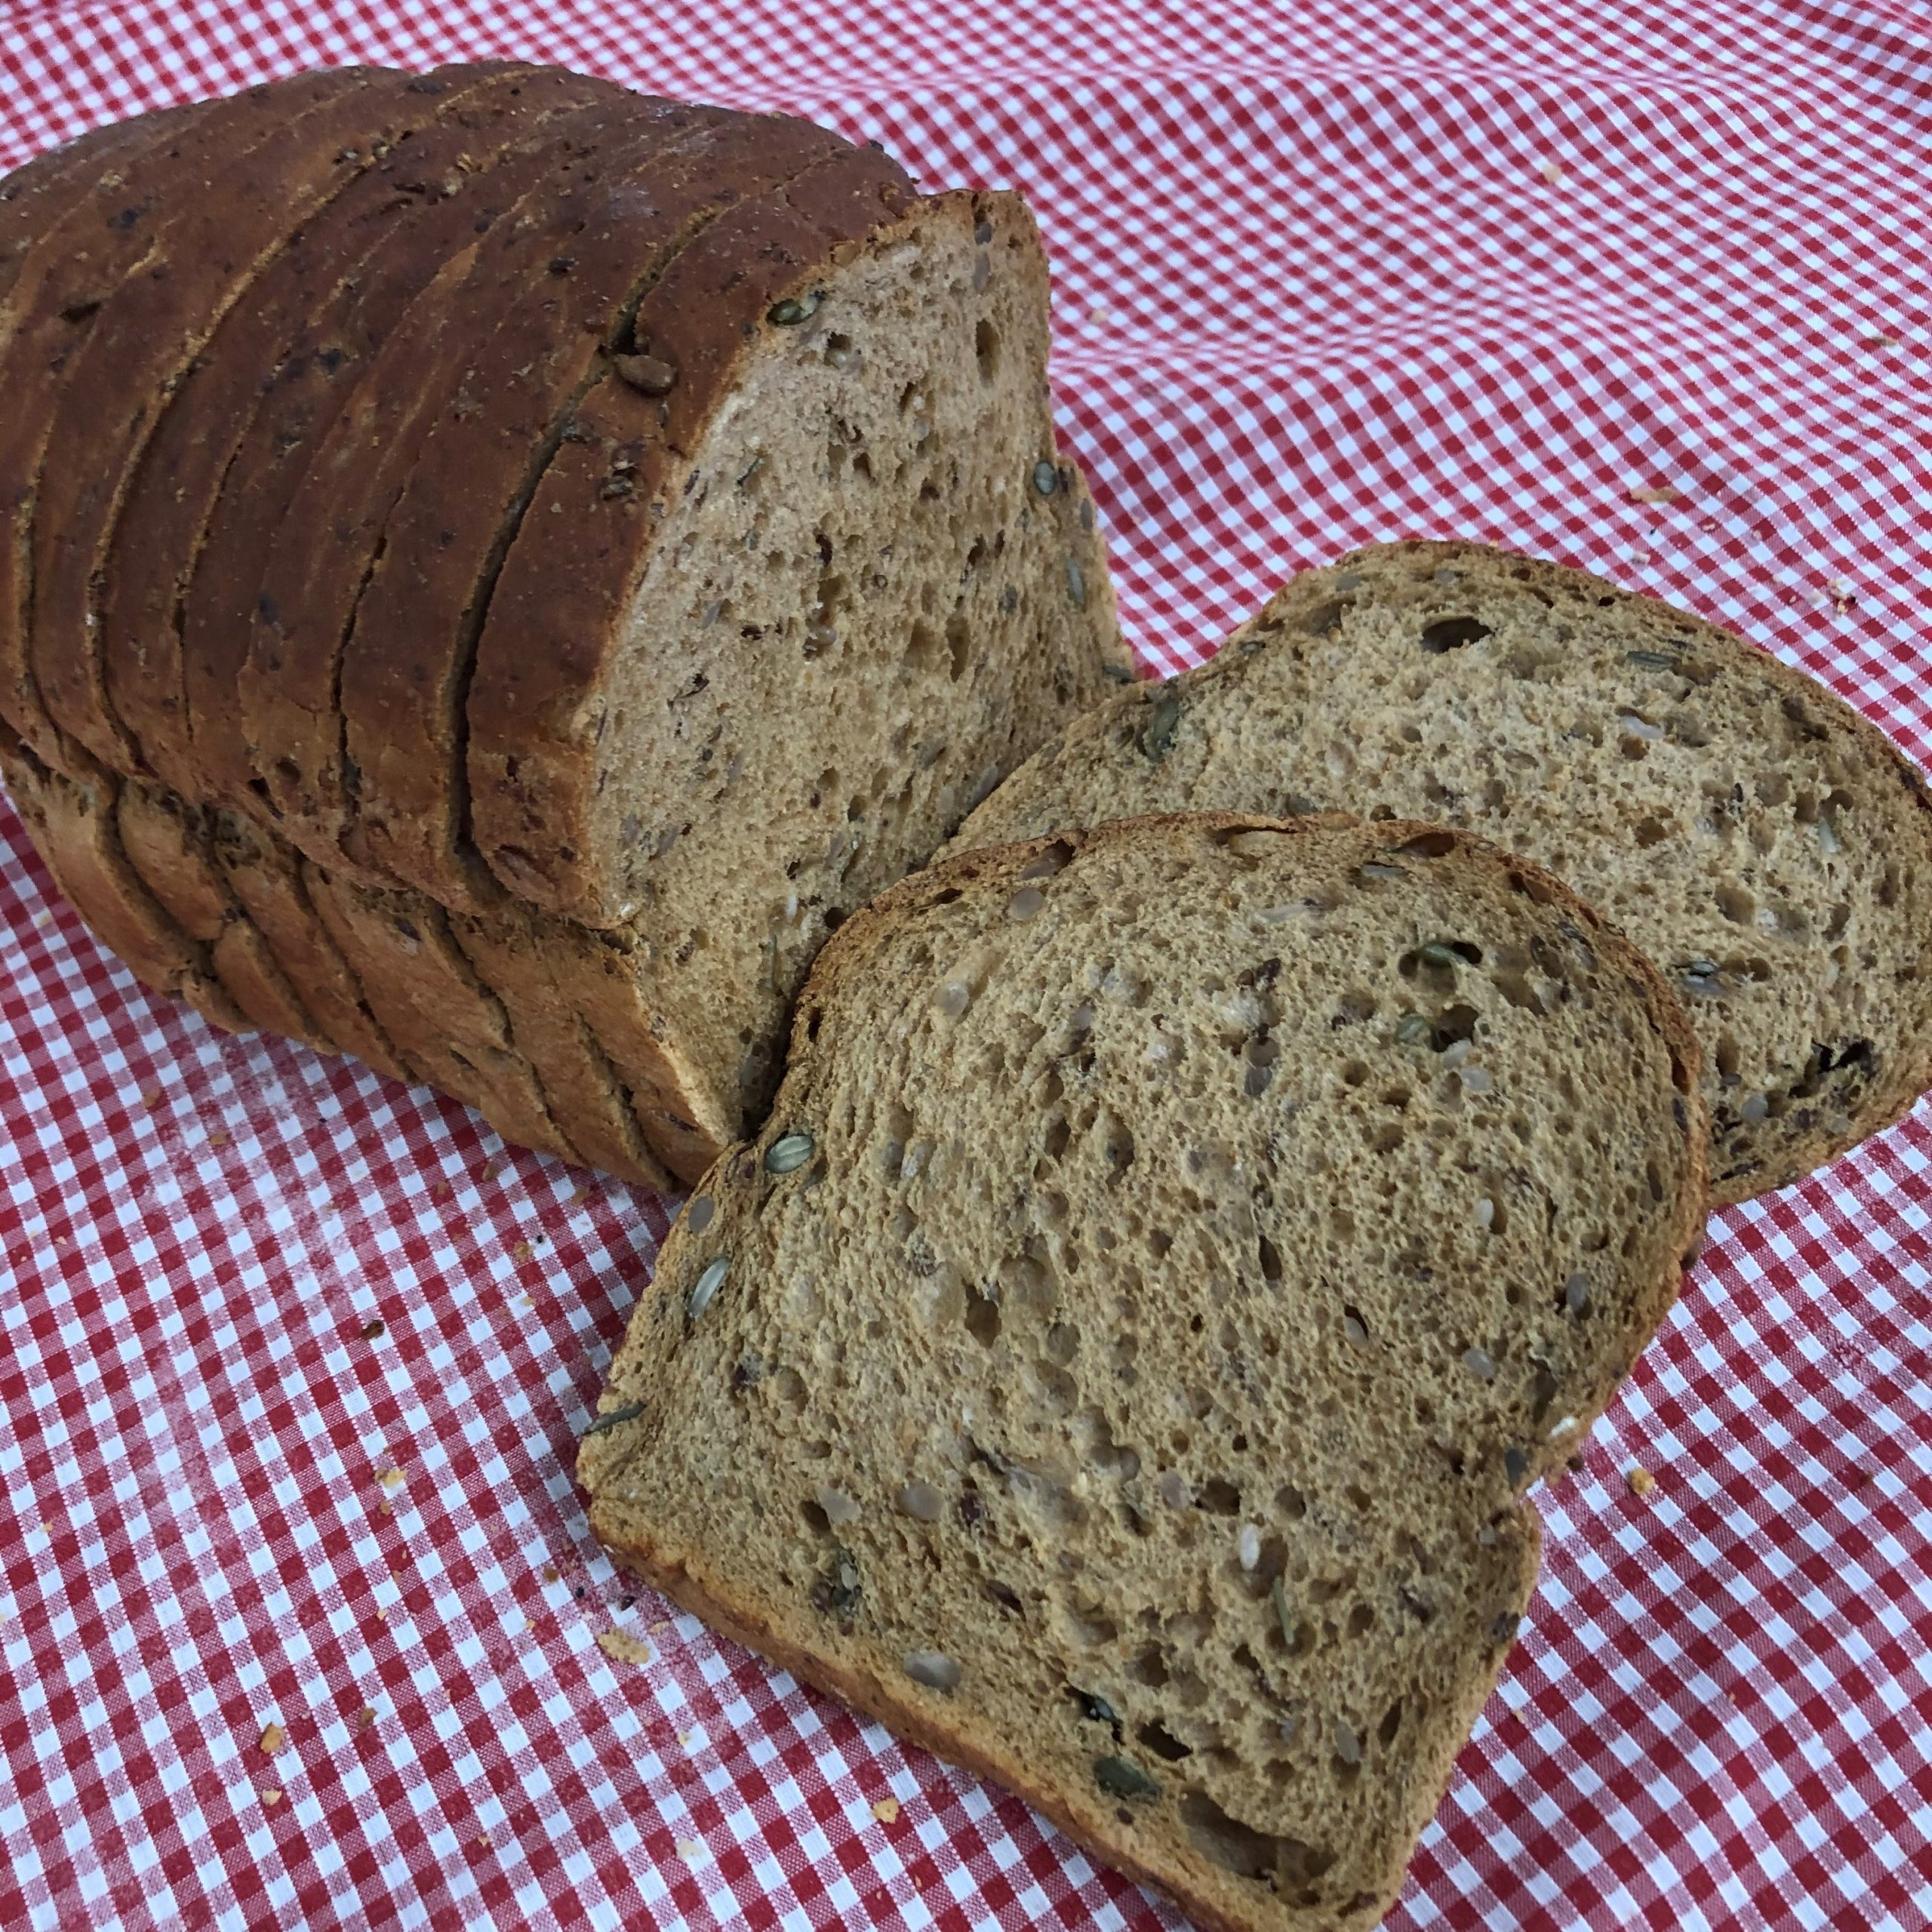 Country Multiseed Loaf